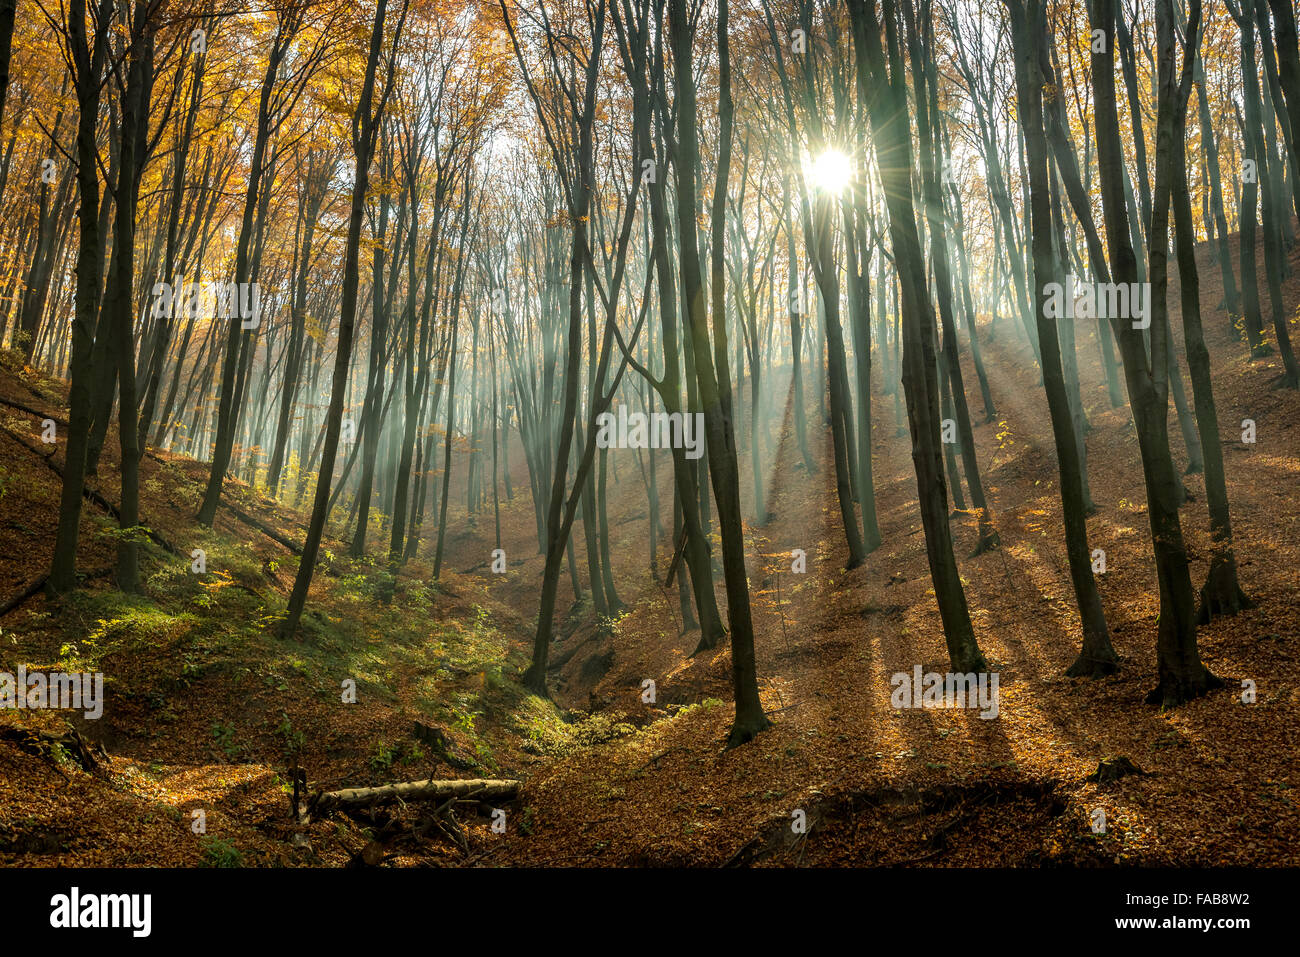 Fagus Forest of Bukovina, Ukraine - Stock Image